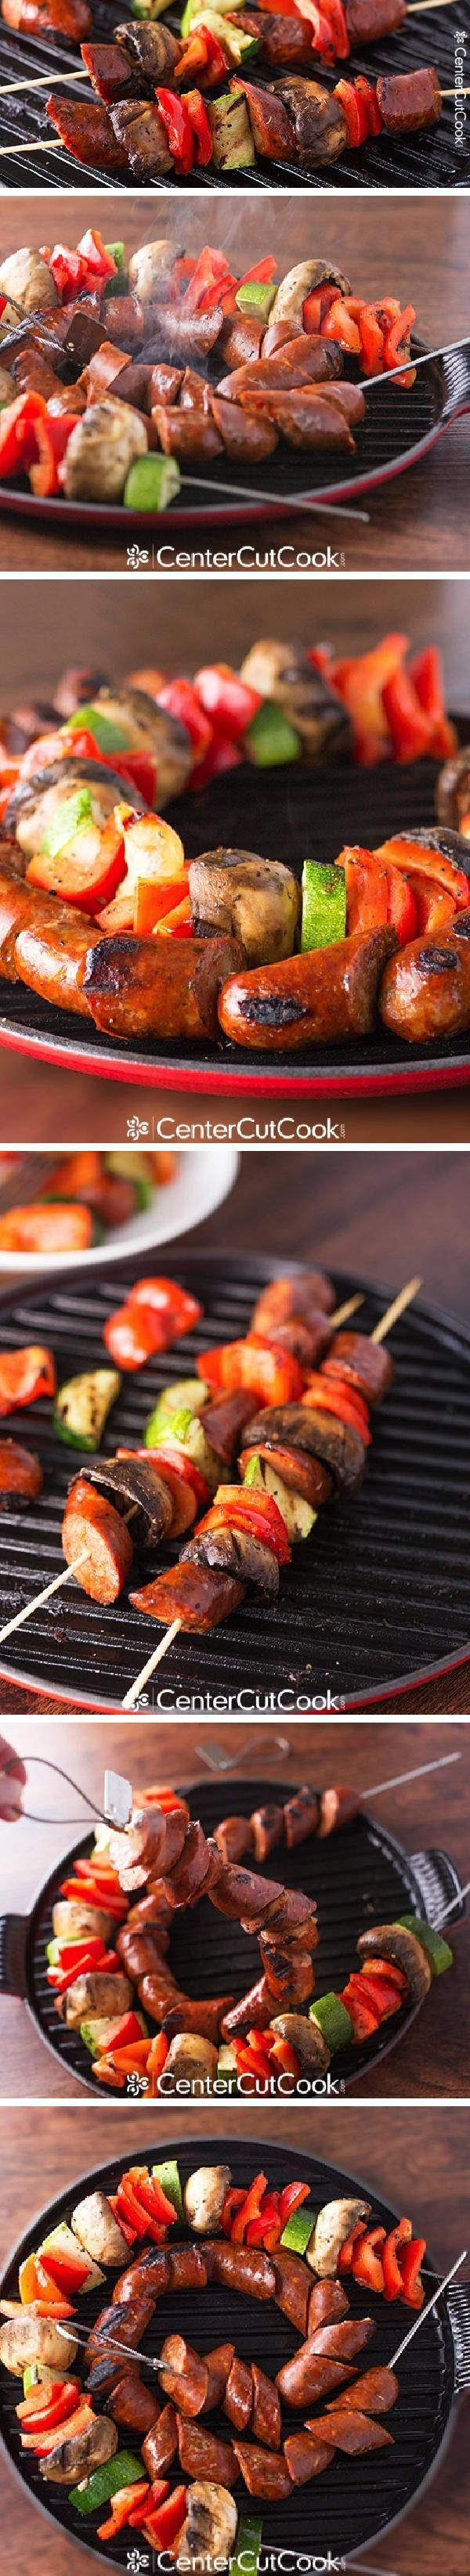 Smoked tender CHICKEN SAUSAGE GRILLED on a skewer with red peppers, zucchini and mushrooms!